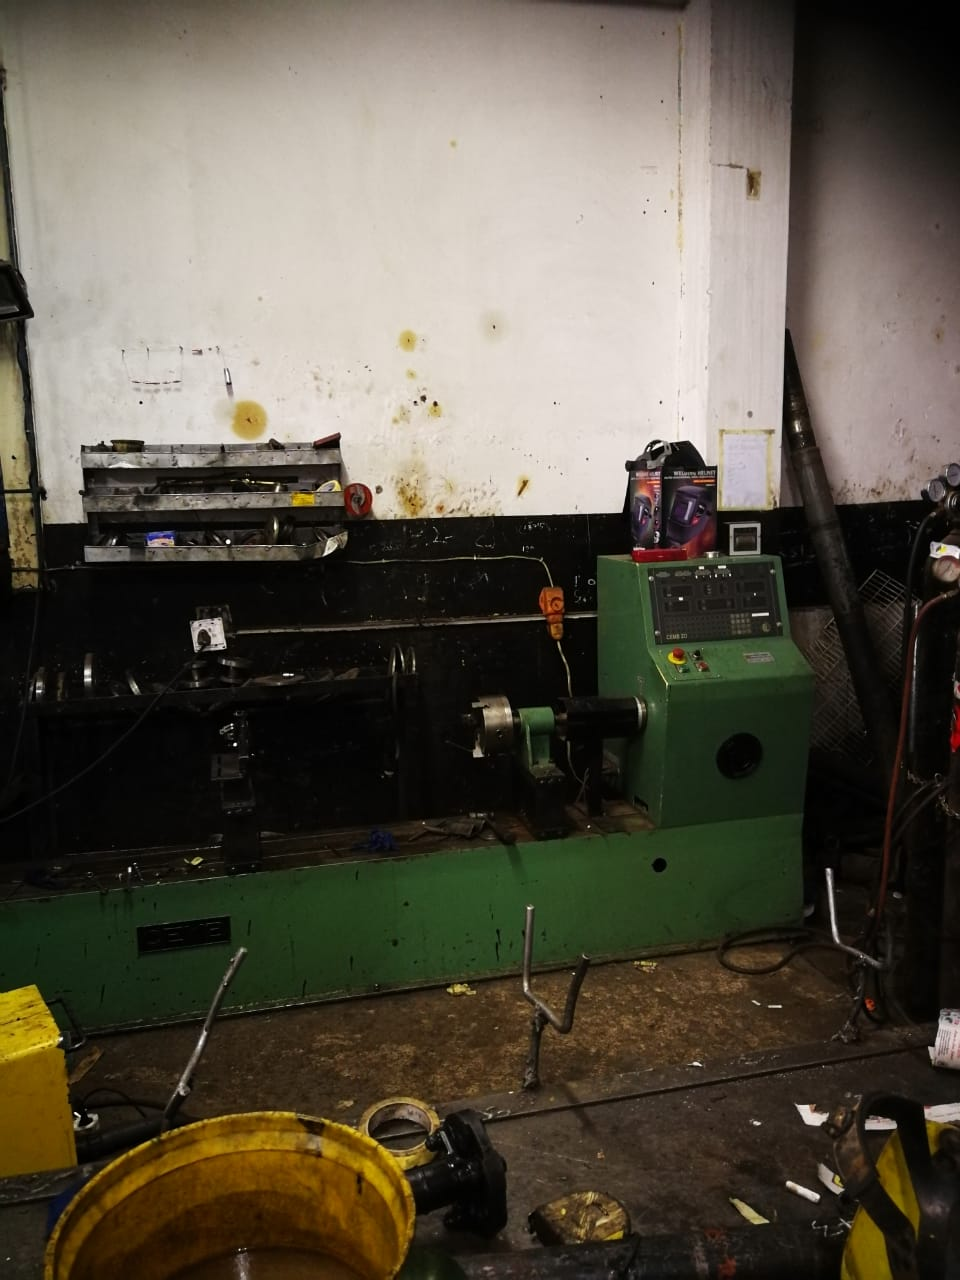 Propshaft and motor vehicle business for sale in 6